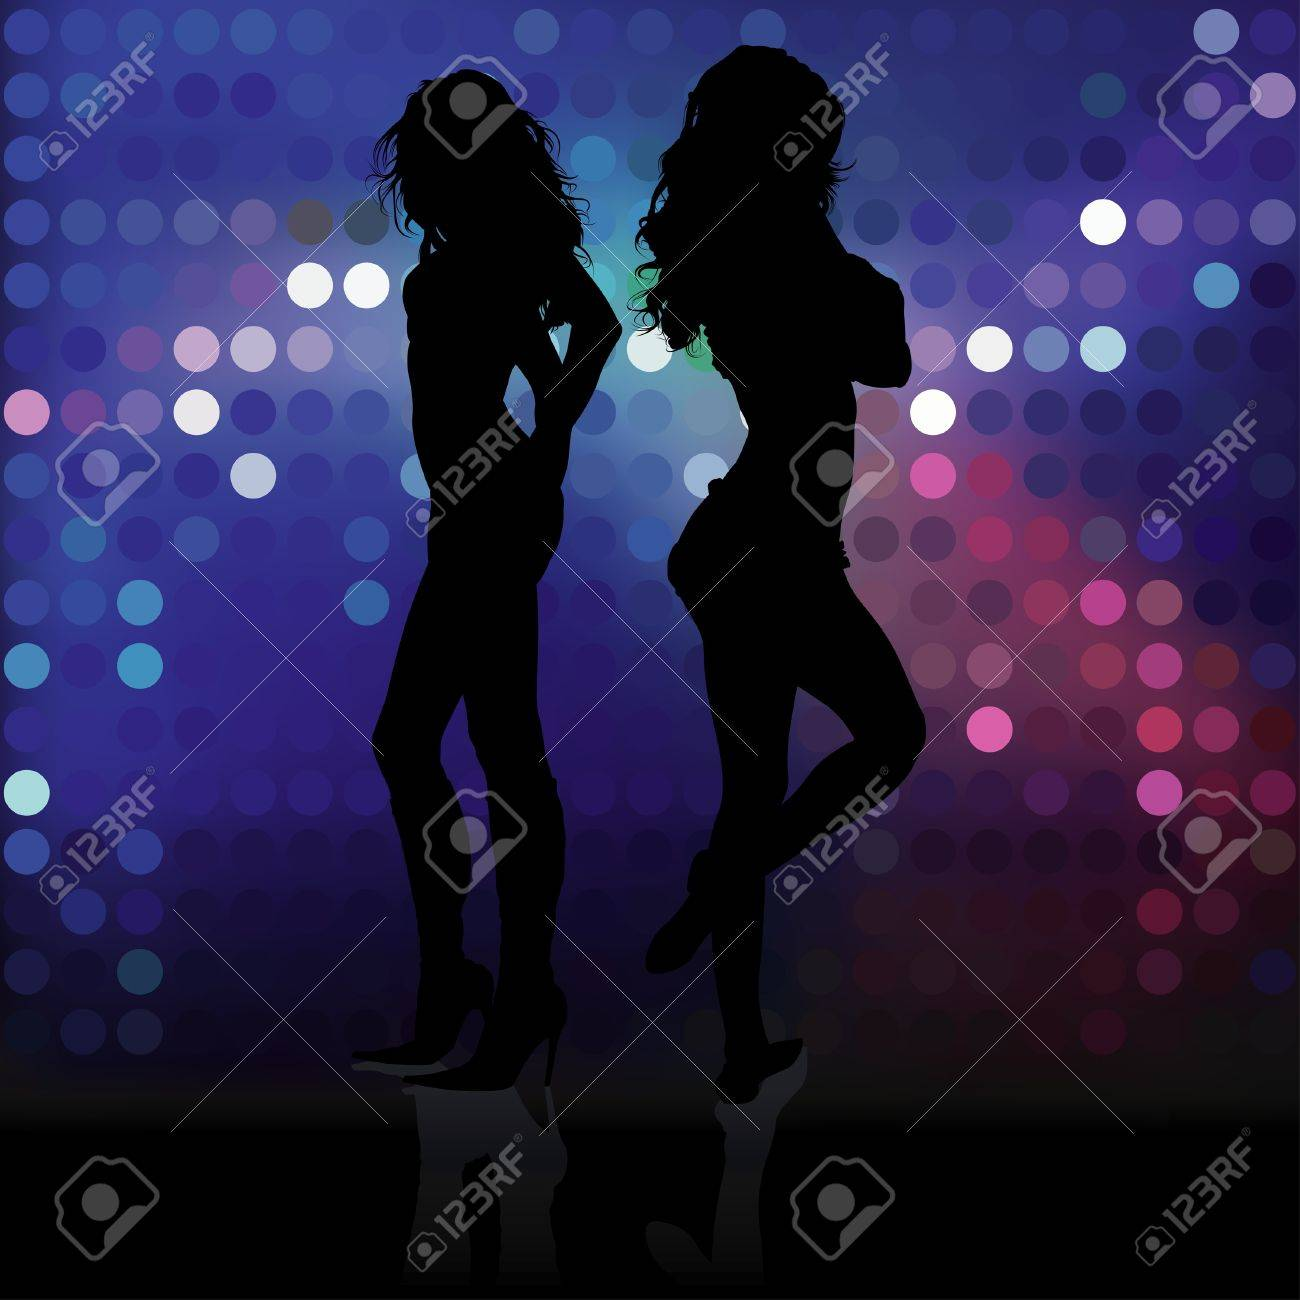 Showgirls - dancing girls silhouettes, Background illustration Stock Vector - 7183567